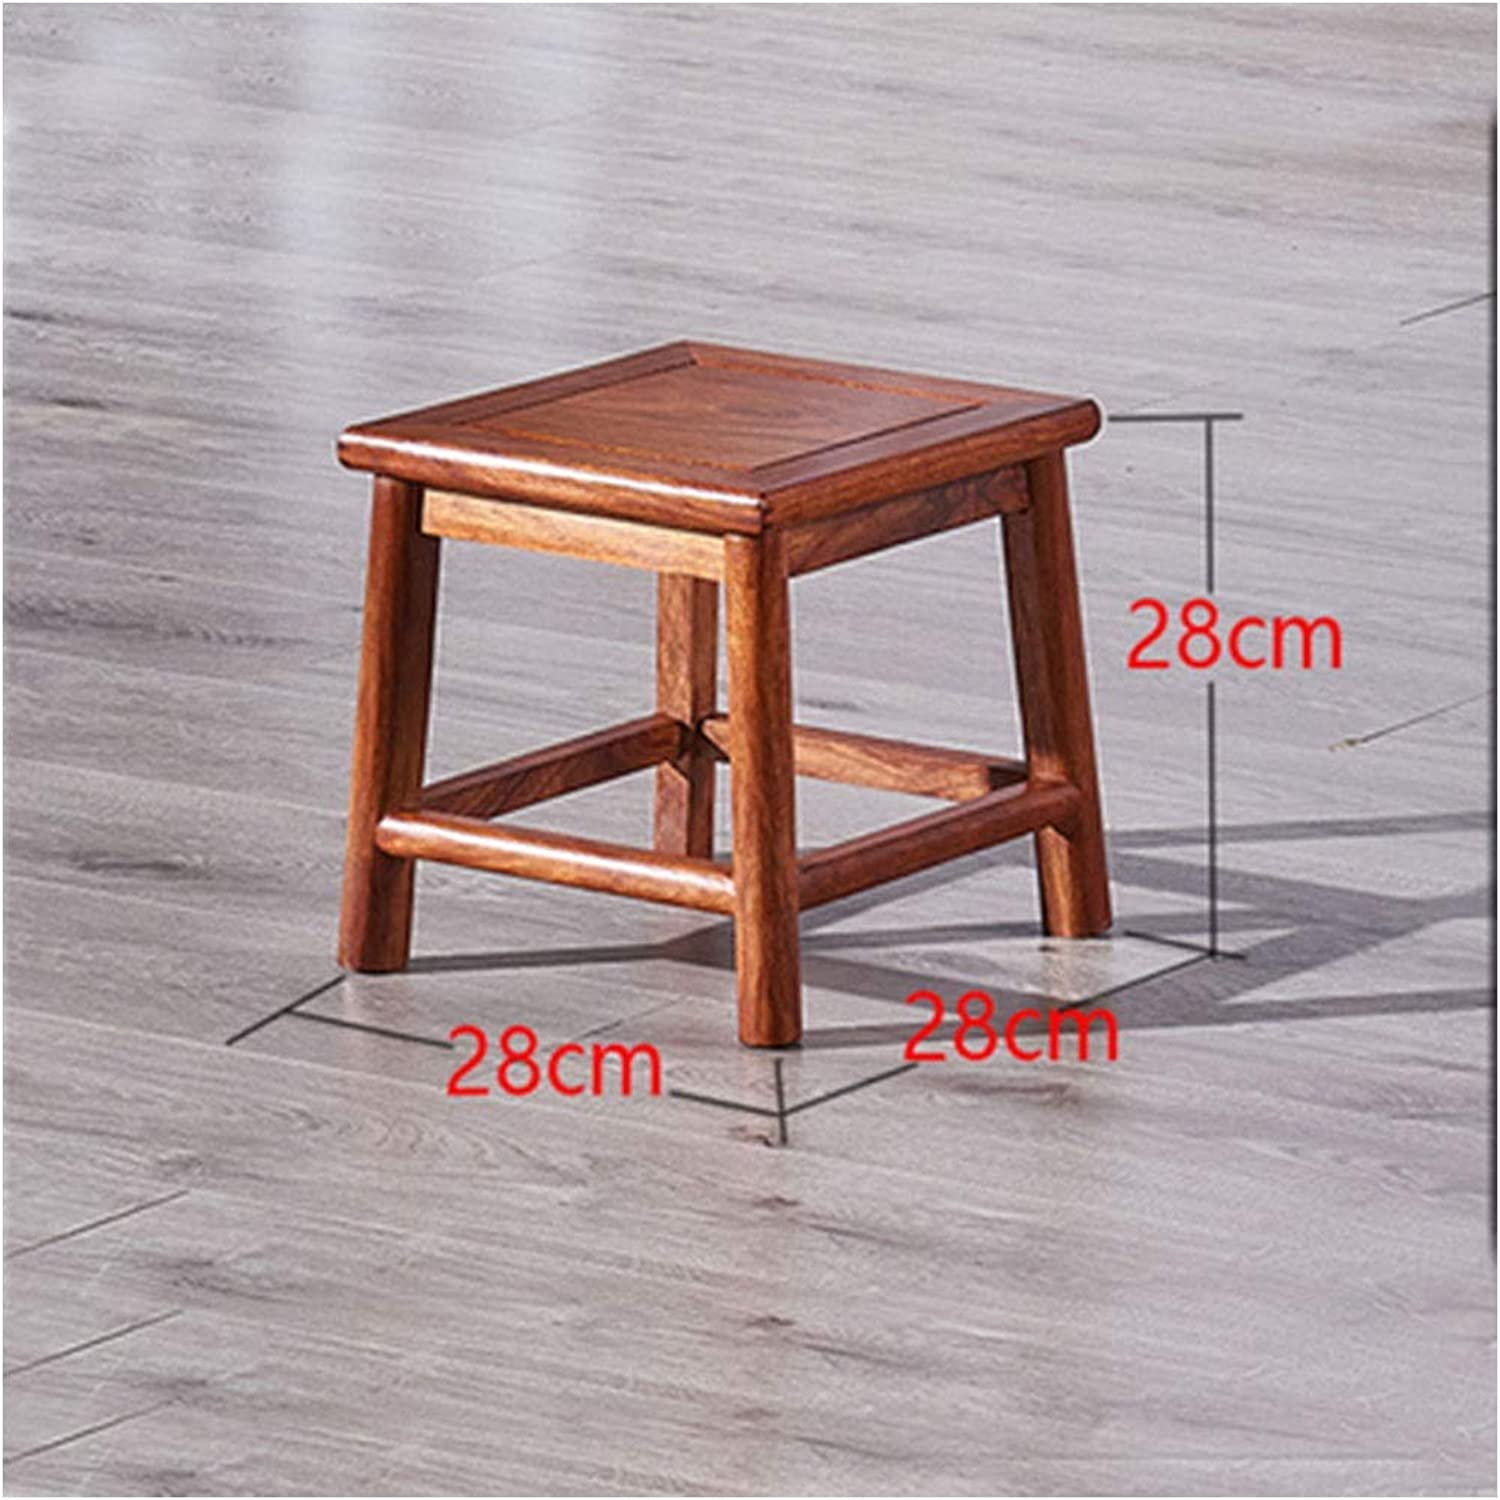 B.YDCM Wooden Bench- Small Square Stool pinkwood Coffee Table Low Stool Solid Wood Small Bench Living Room shoes Bench - Wood Bench (color   A)